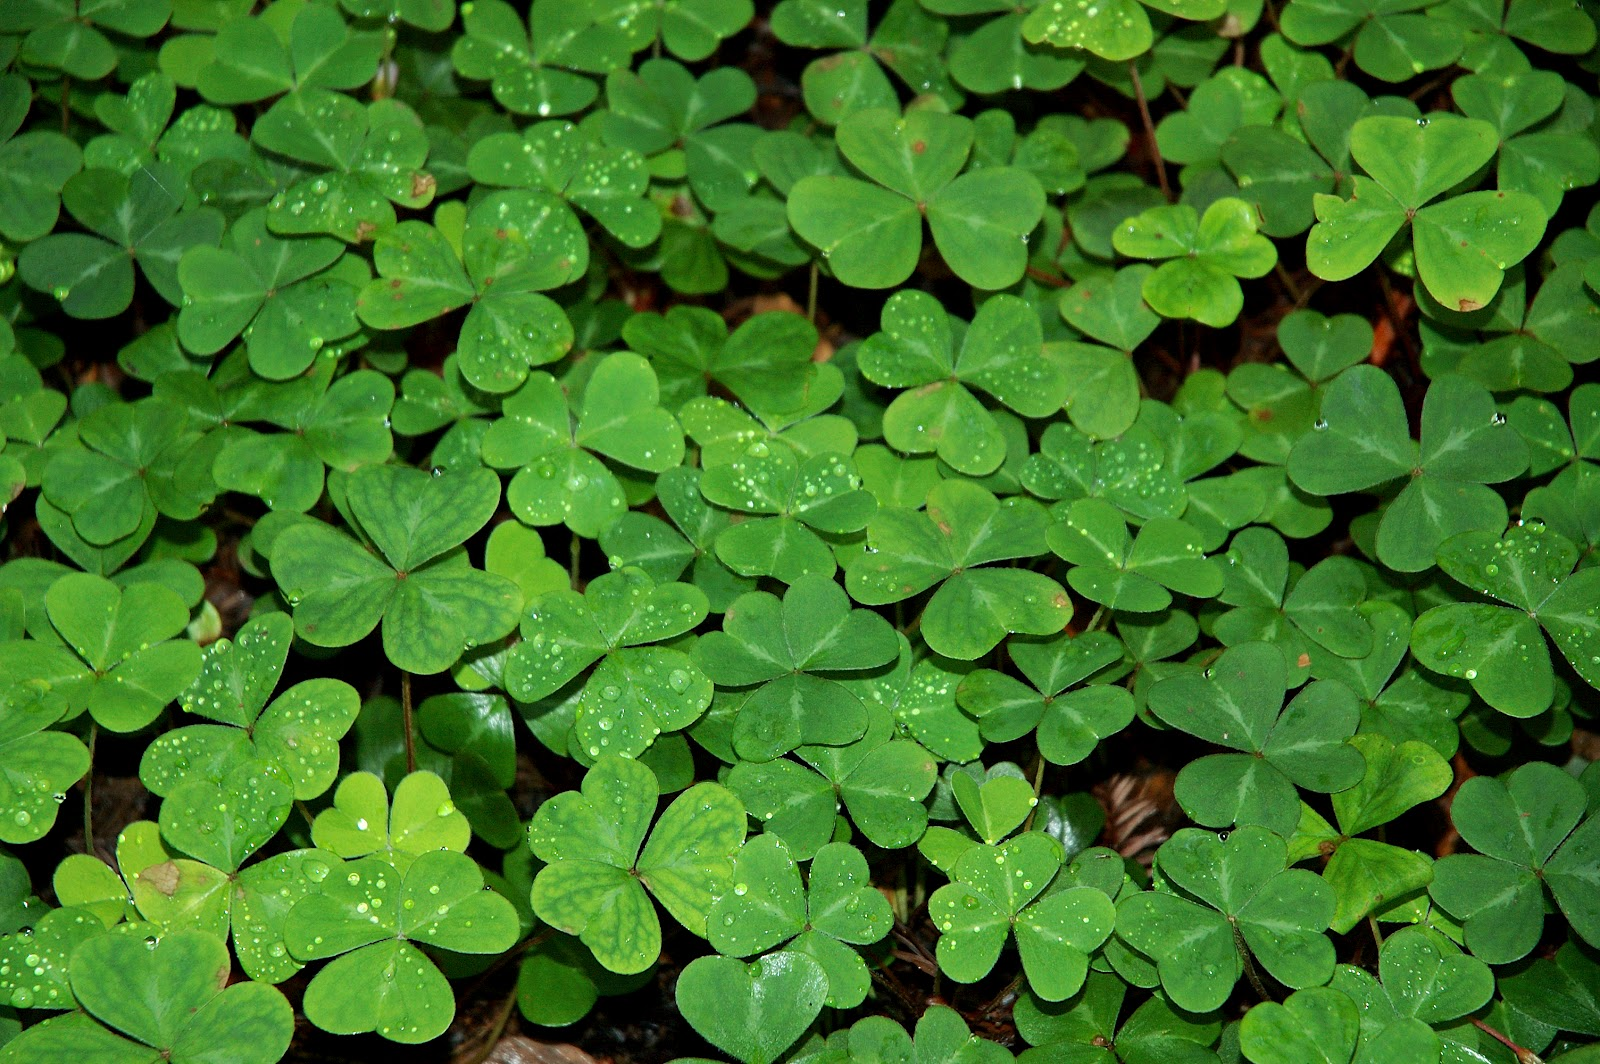 Field of Shamrocks